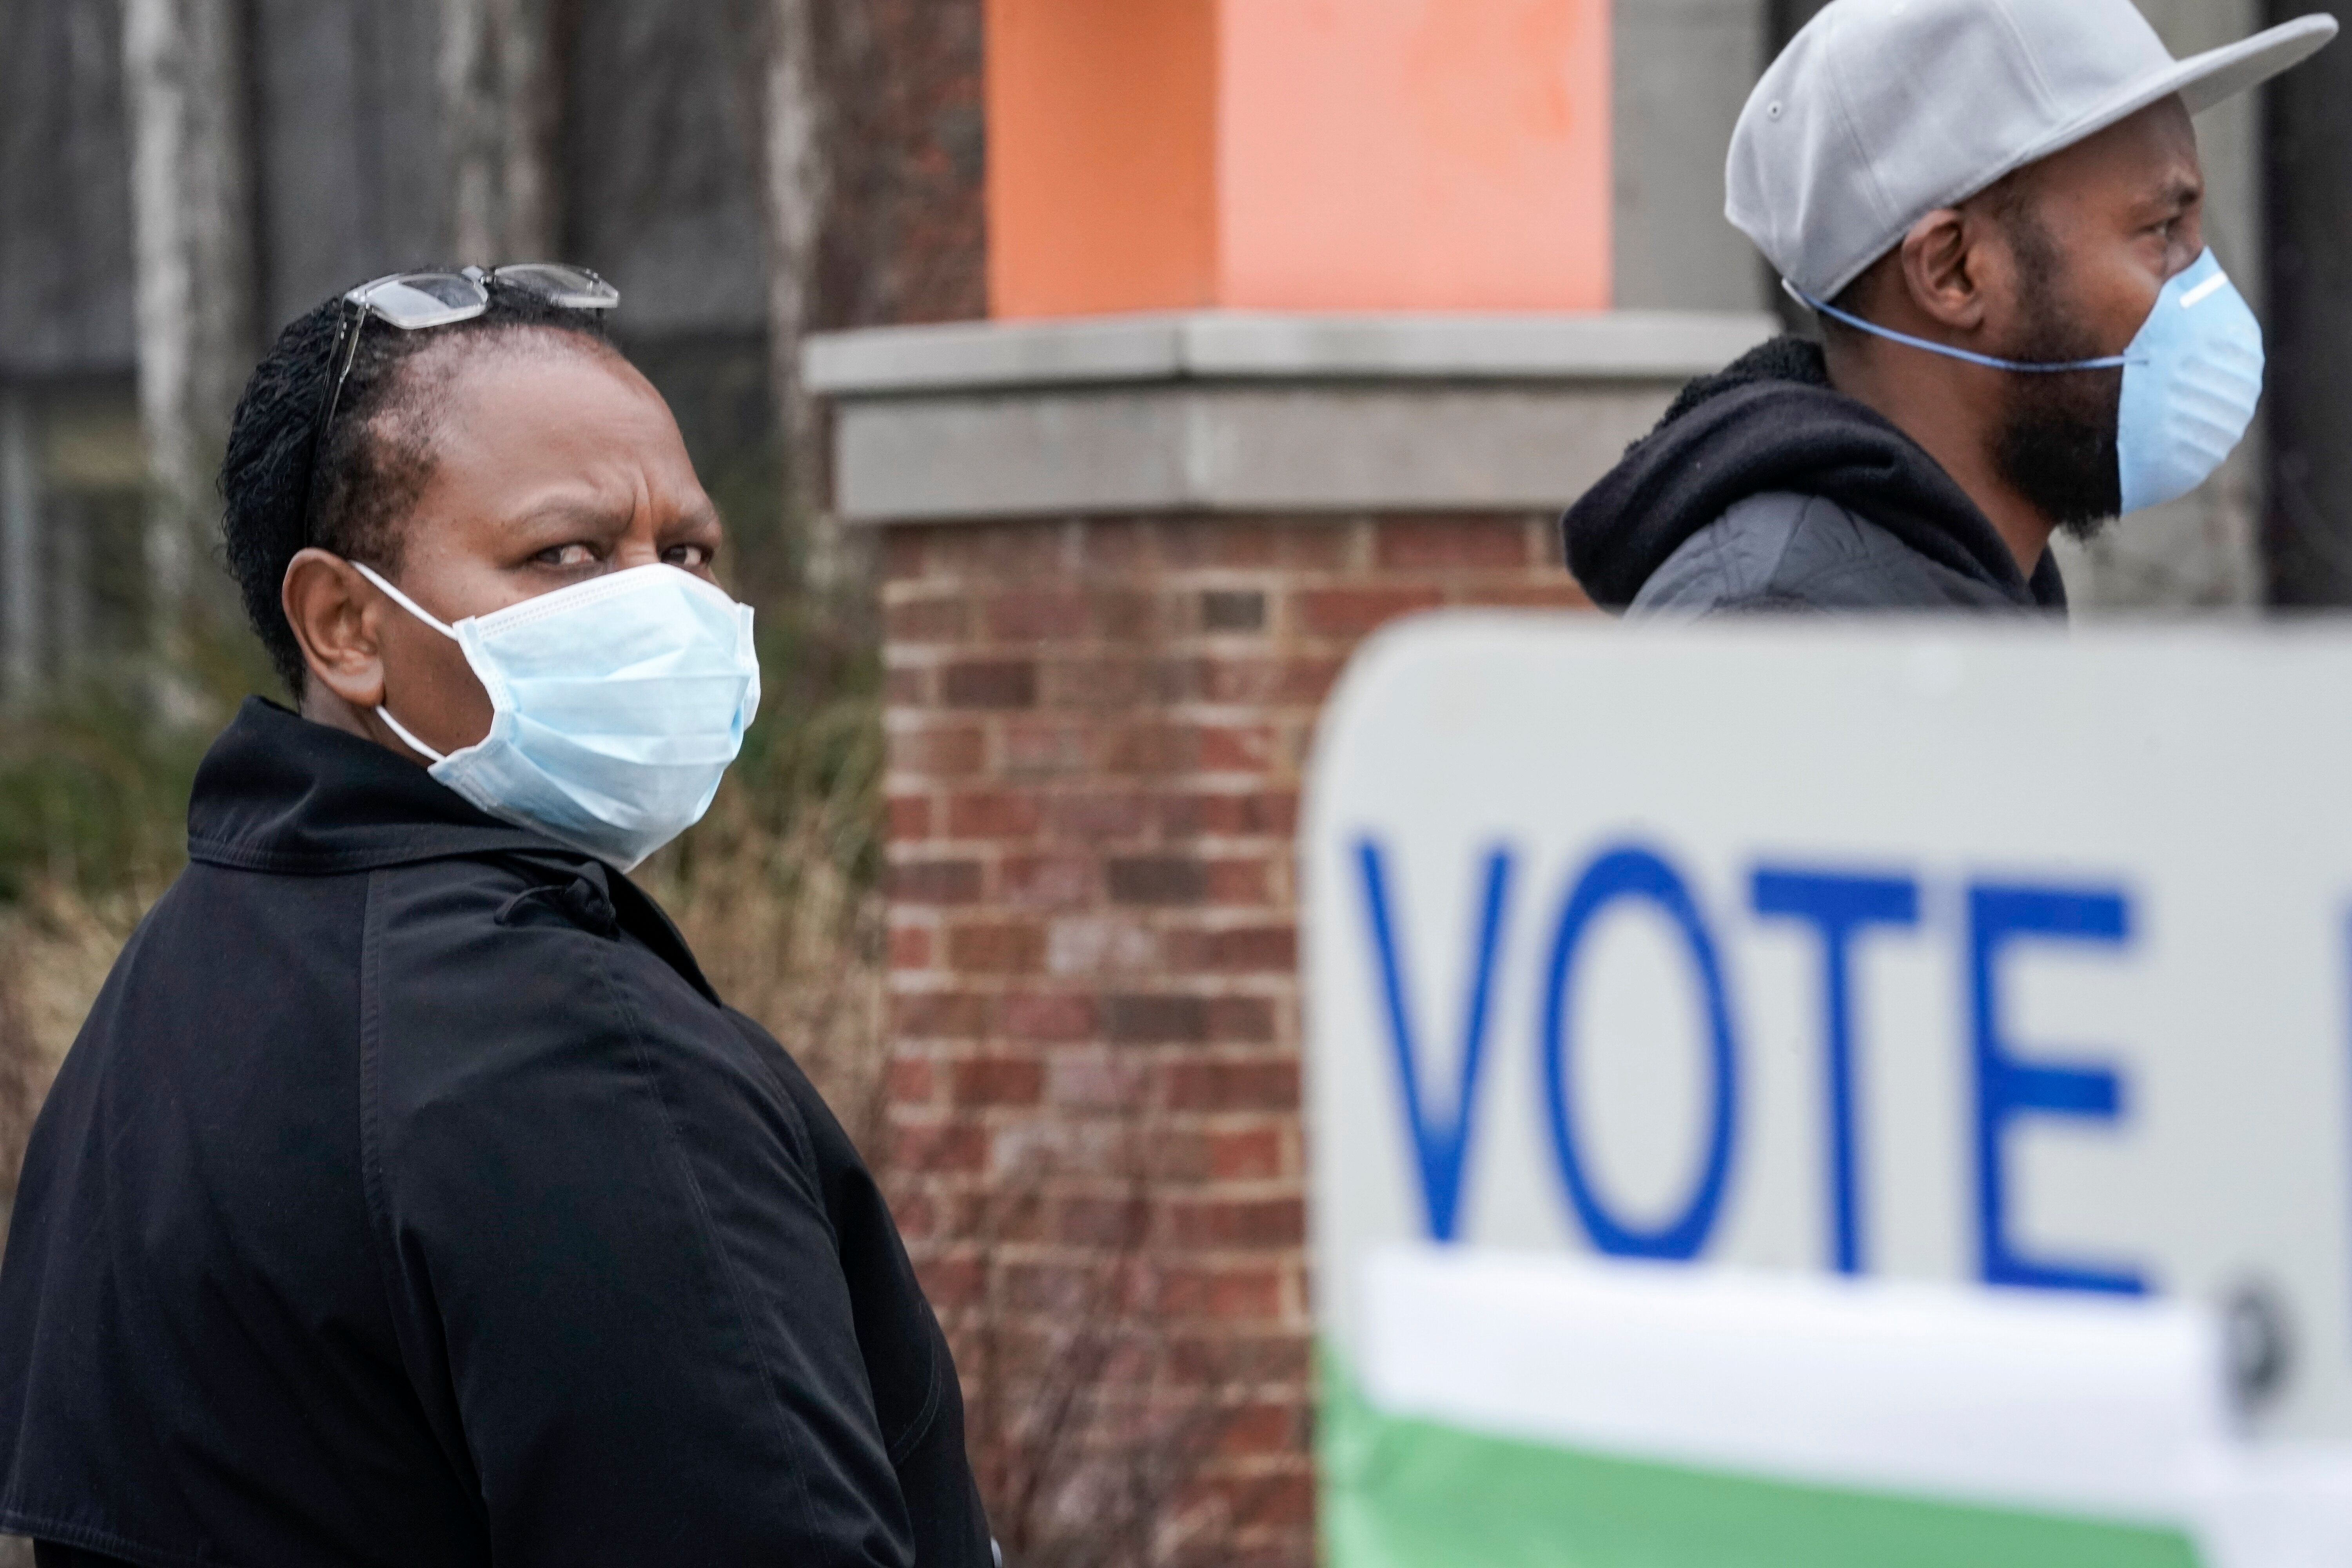 Voters masked against the coronavirus line up to vote at Riverside High School in Milwaukee.